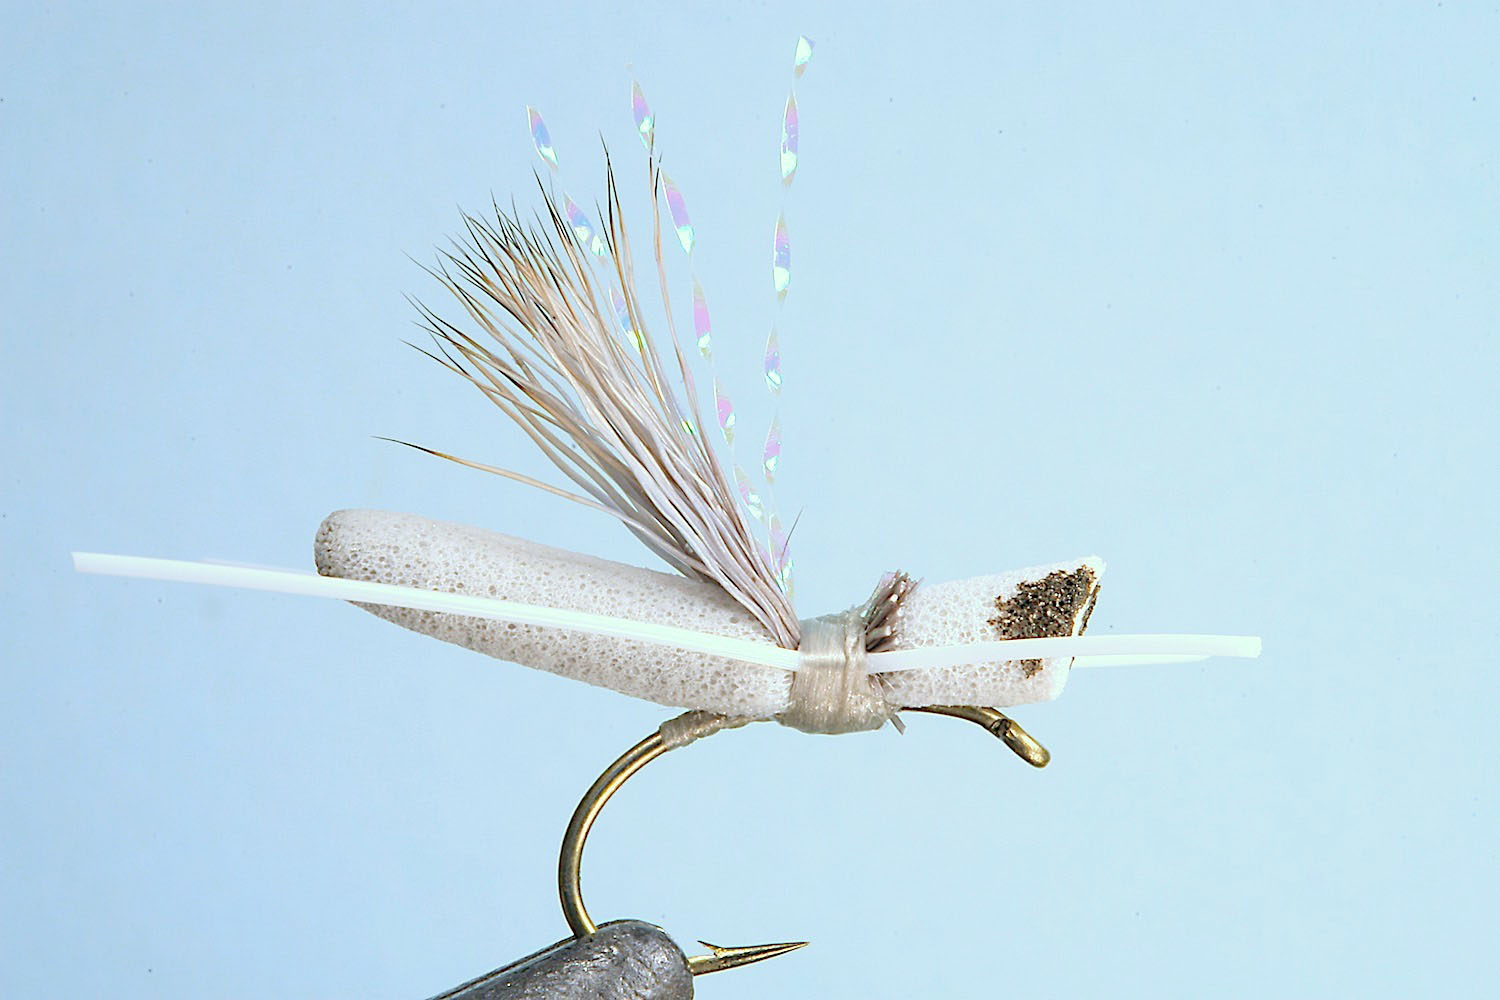 Showing step 6 of tying sequence for hot foam hopper fly pattern